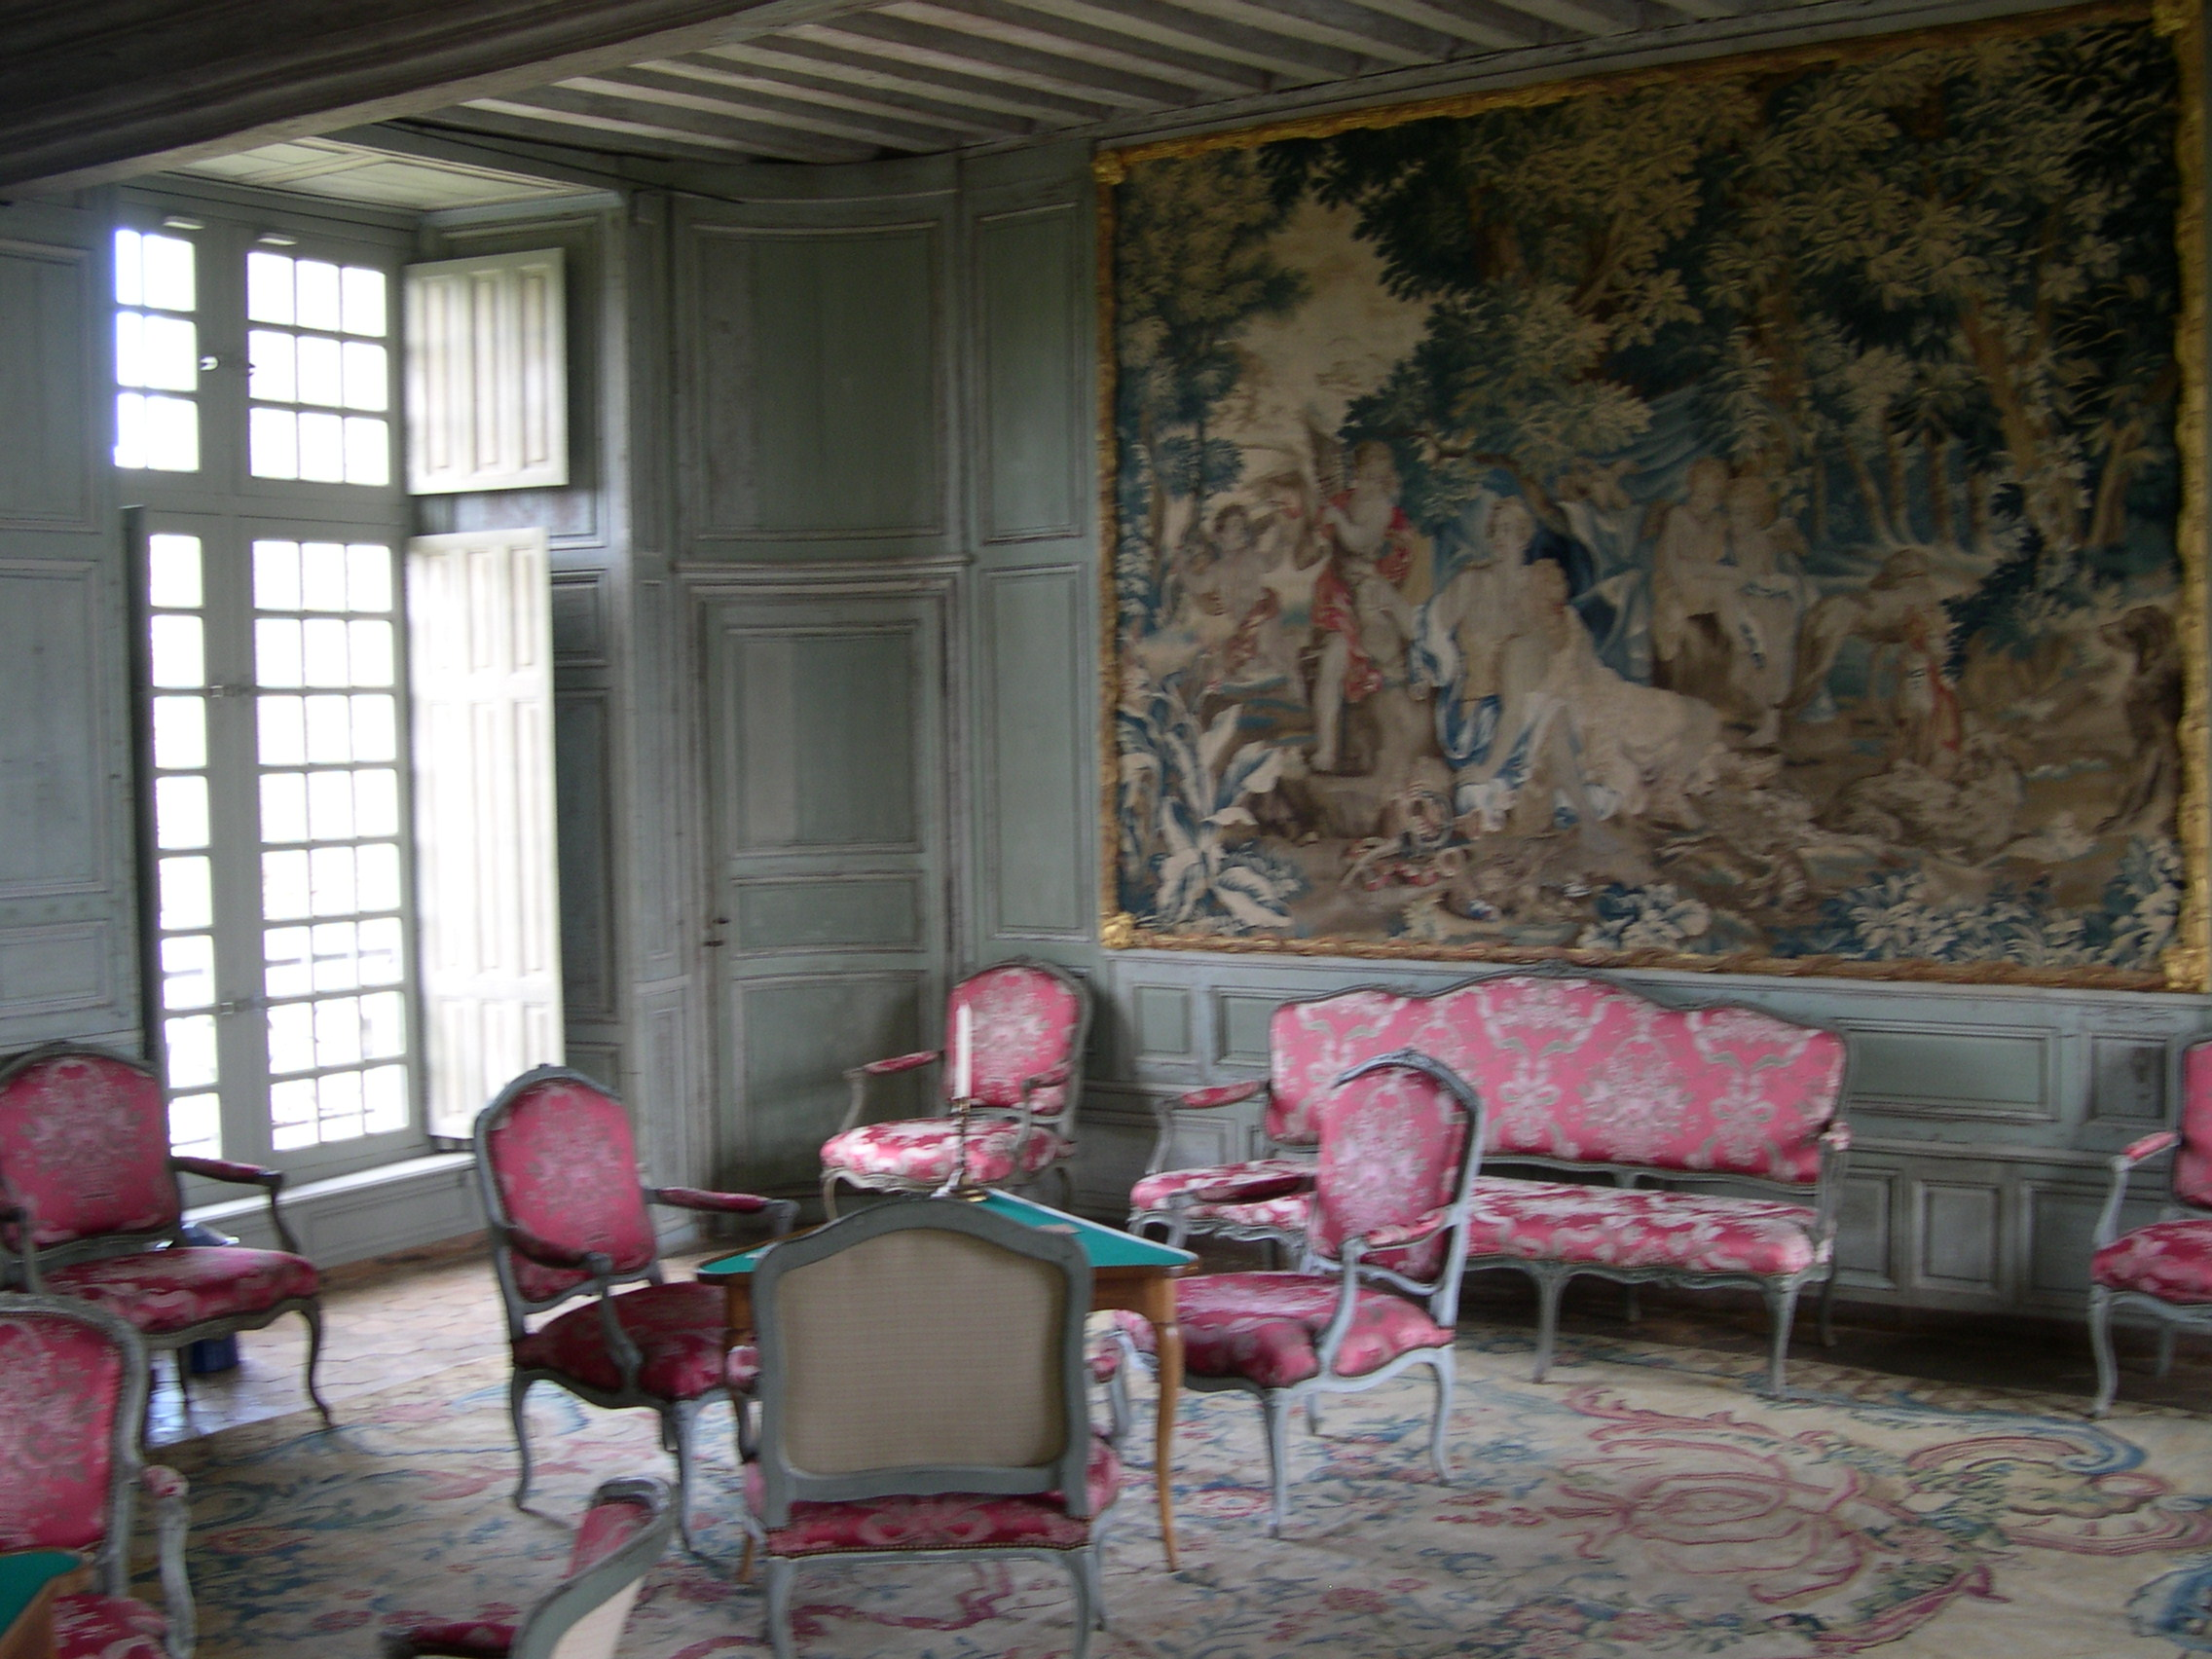 Hotel Interiors File Chateau De Talcy Interieur 04 Jpg Wikimedia Commons